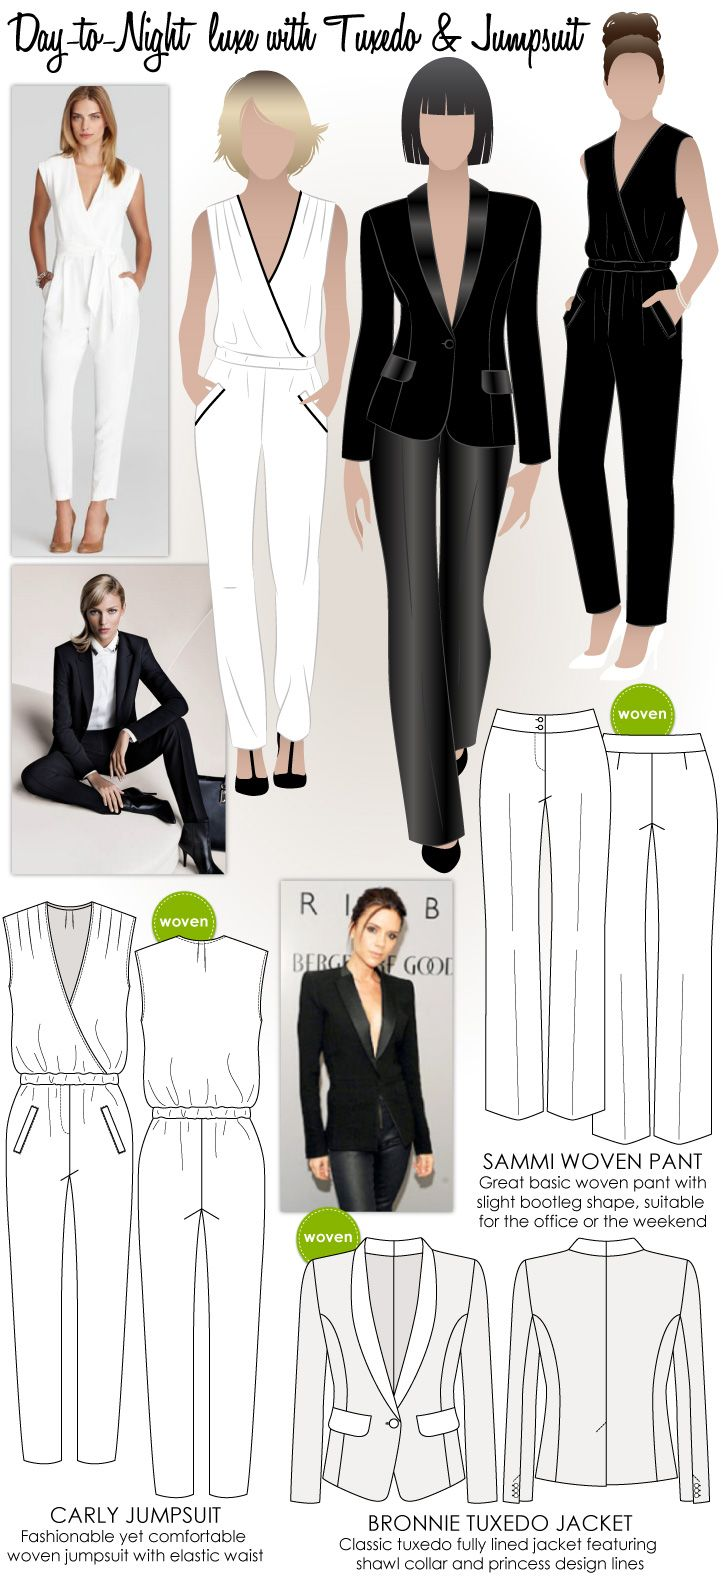 Day-to-Night luxe with Tuxedo & Jumpsuit